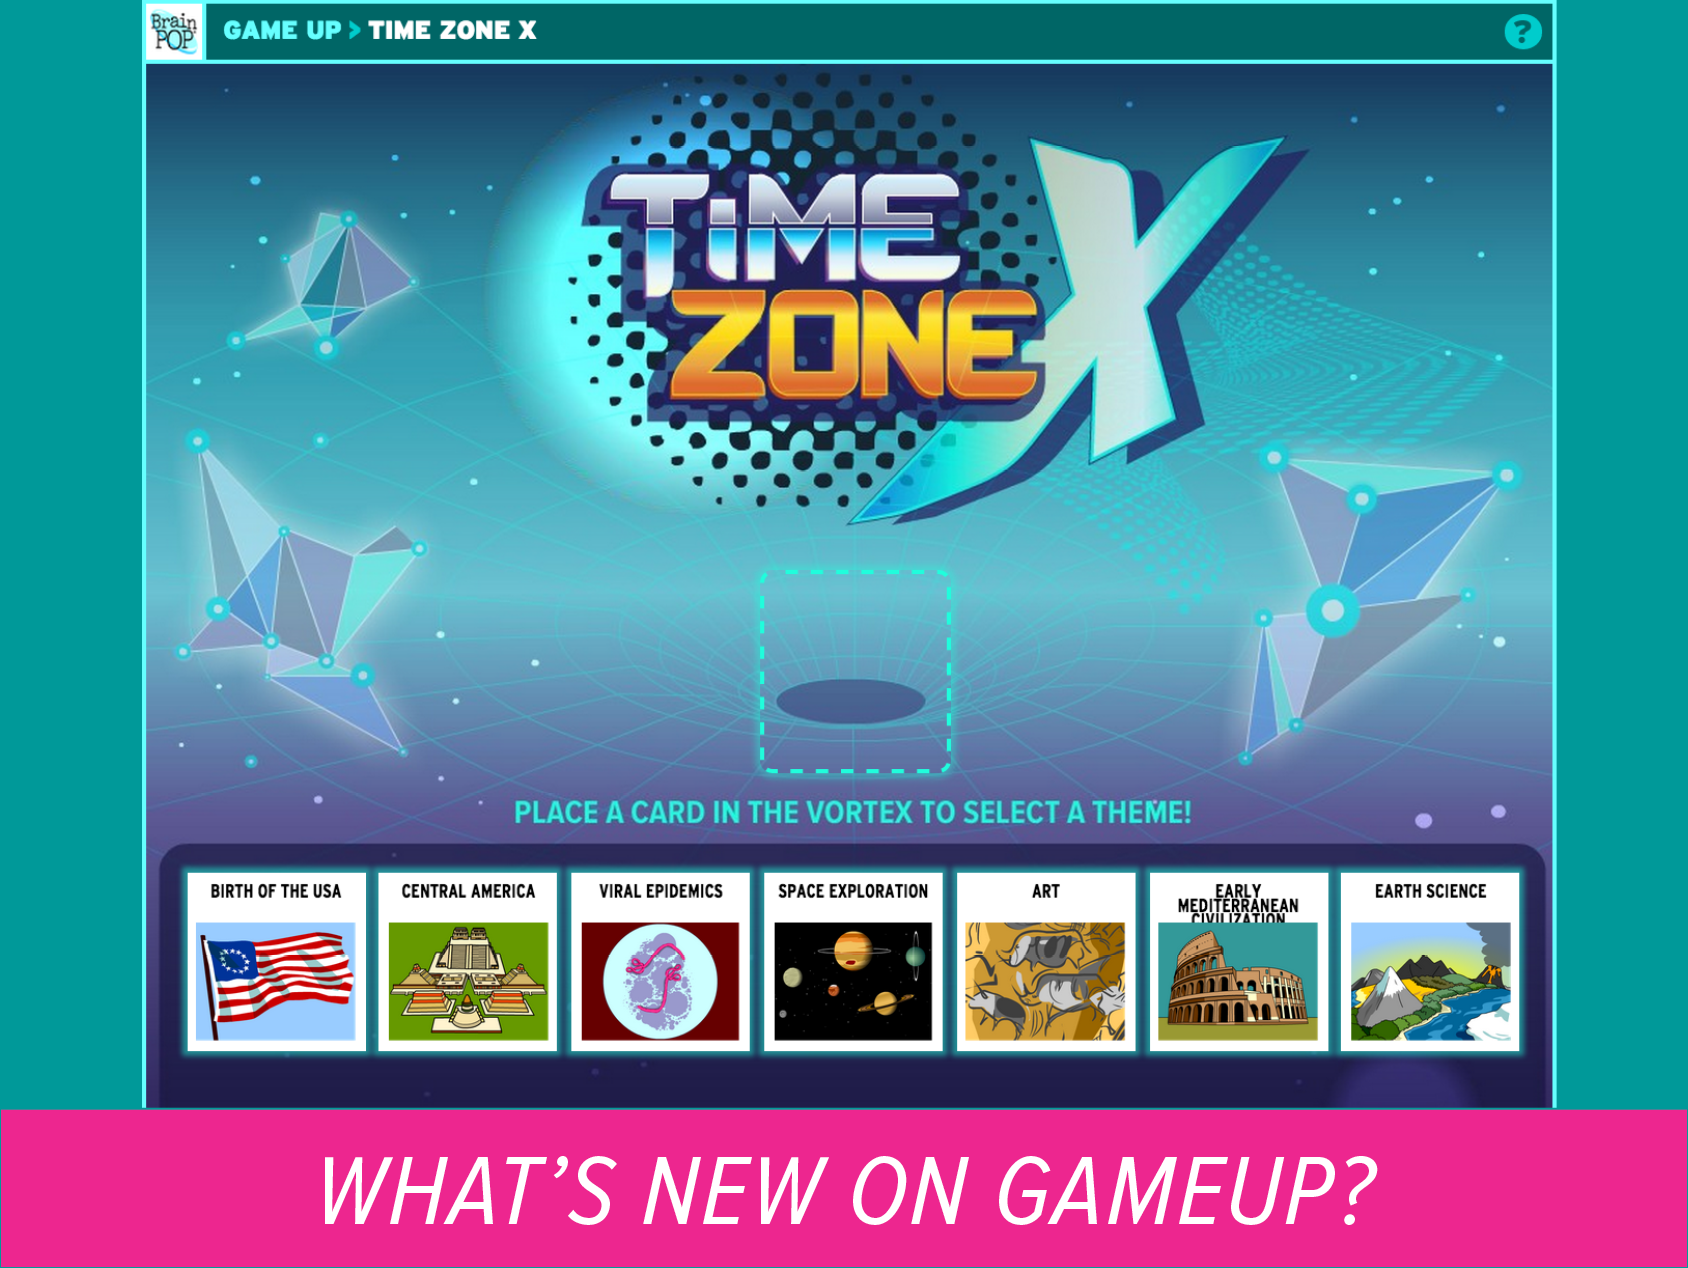 New on GameUp: Time Zone X